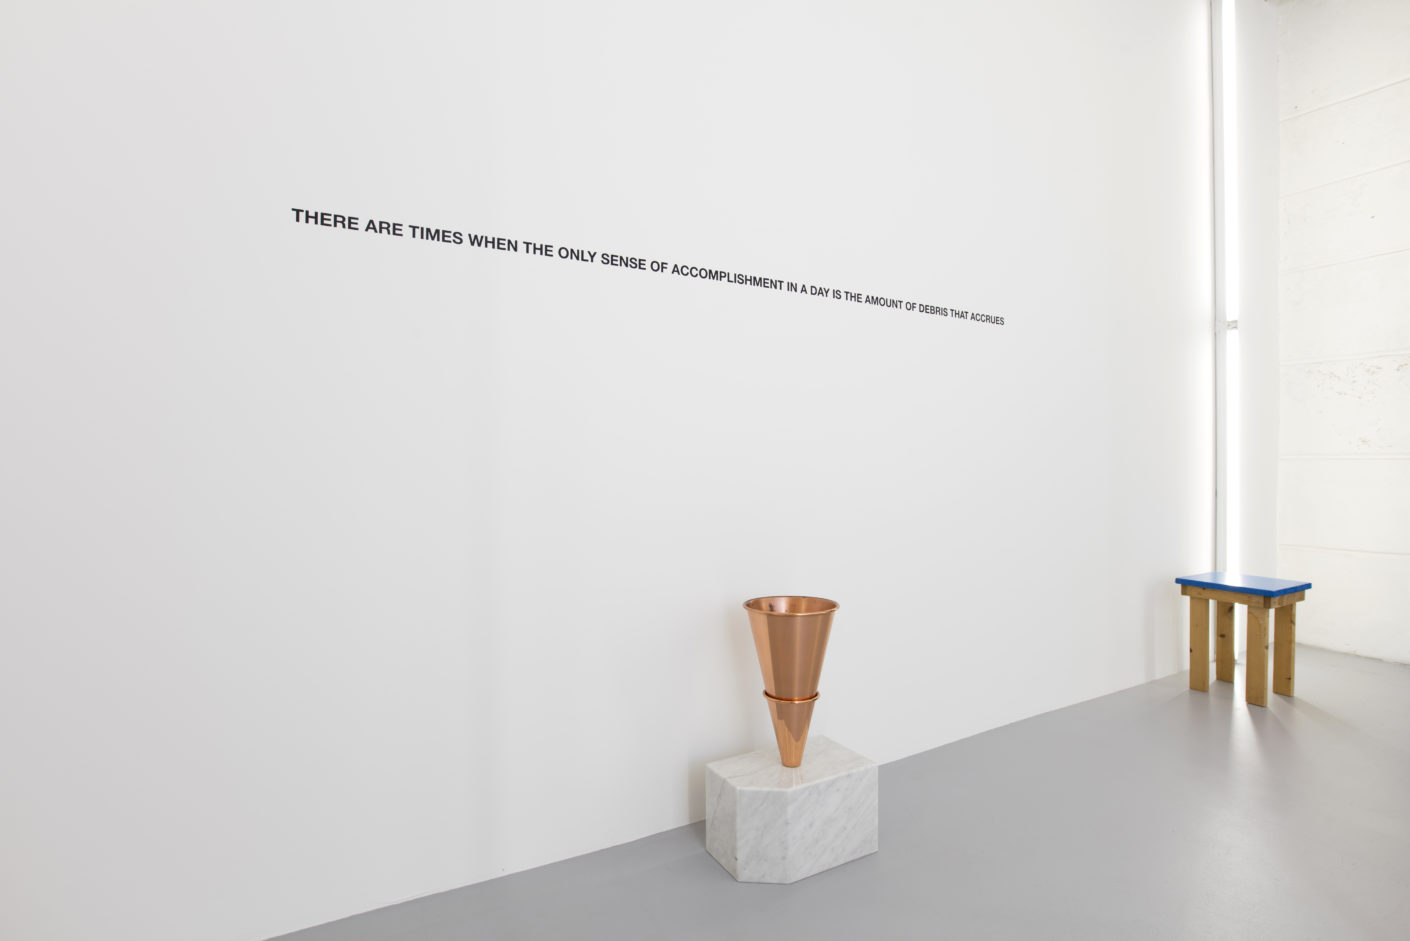 """Papierkorb """"There are times when the only sense of accomplishment in a day is the amount of debris that accrues"""" von Lawrence Weiner."""